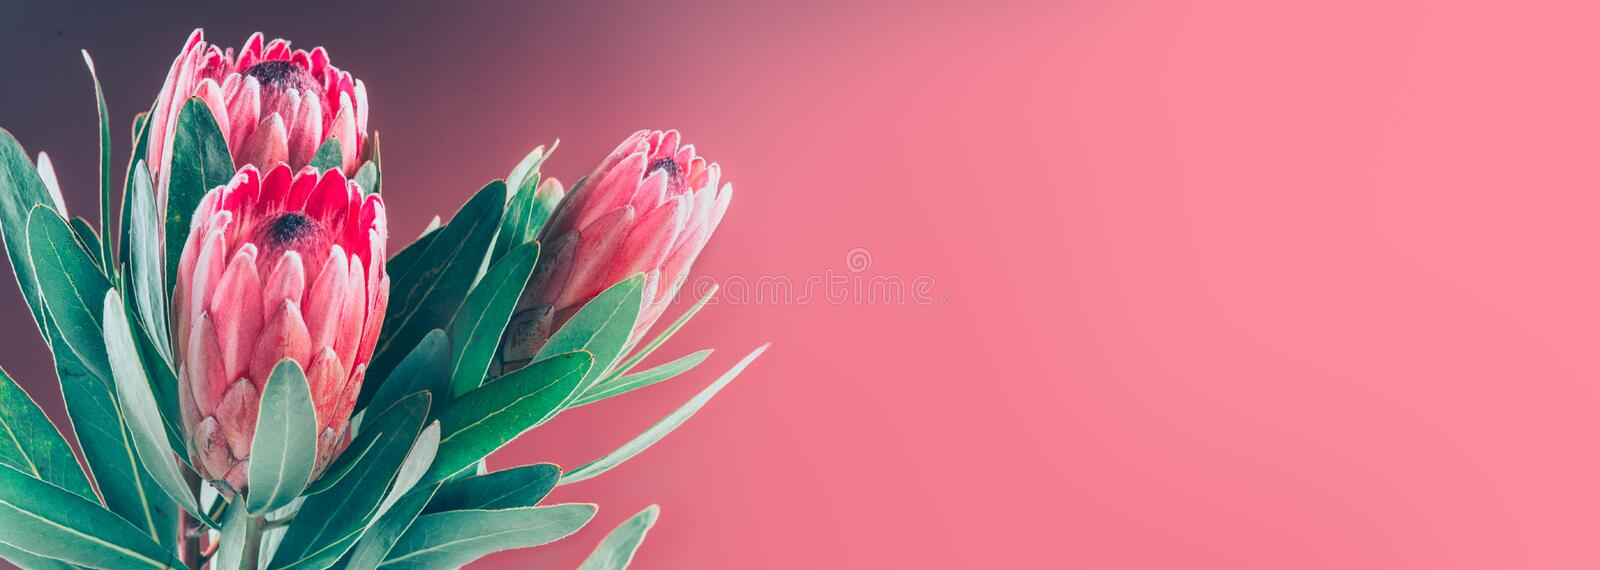 Protea buds closeup. Bunch of red King Protea flowers. Valentine`s Day bouquet. Widescreen stock image